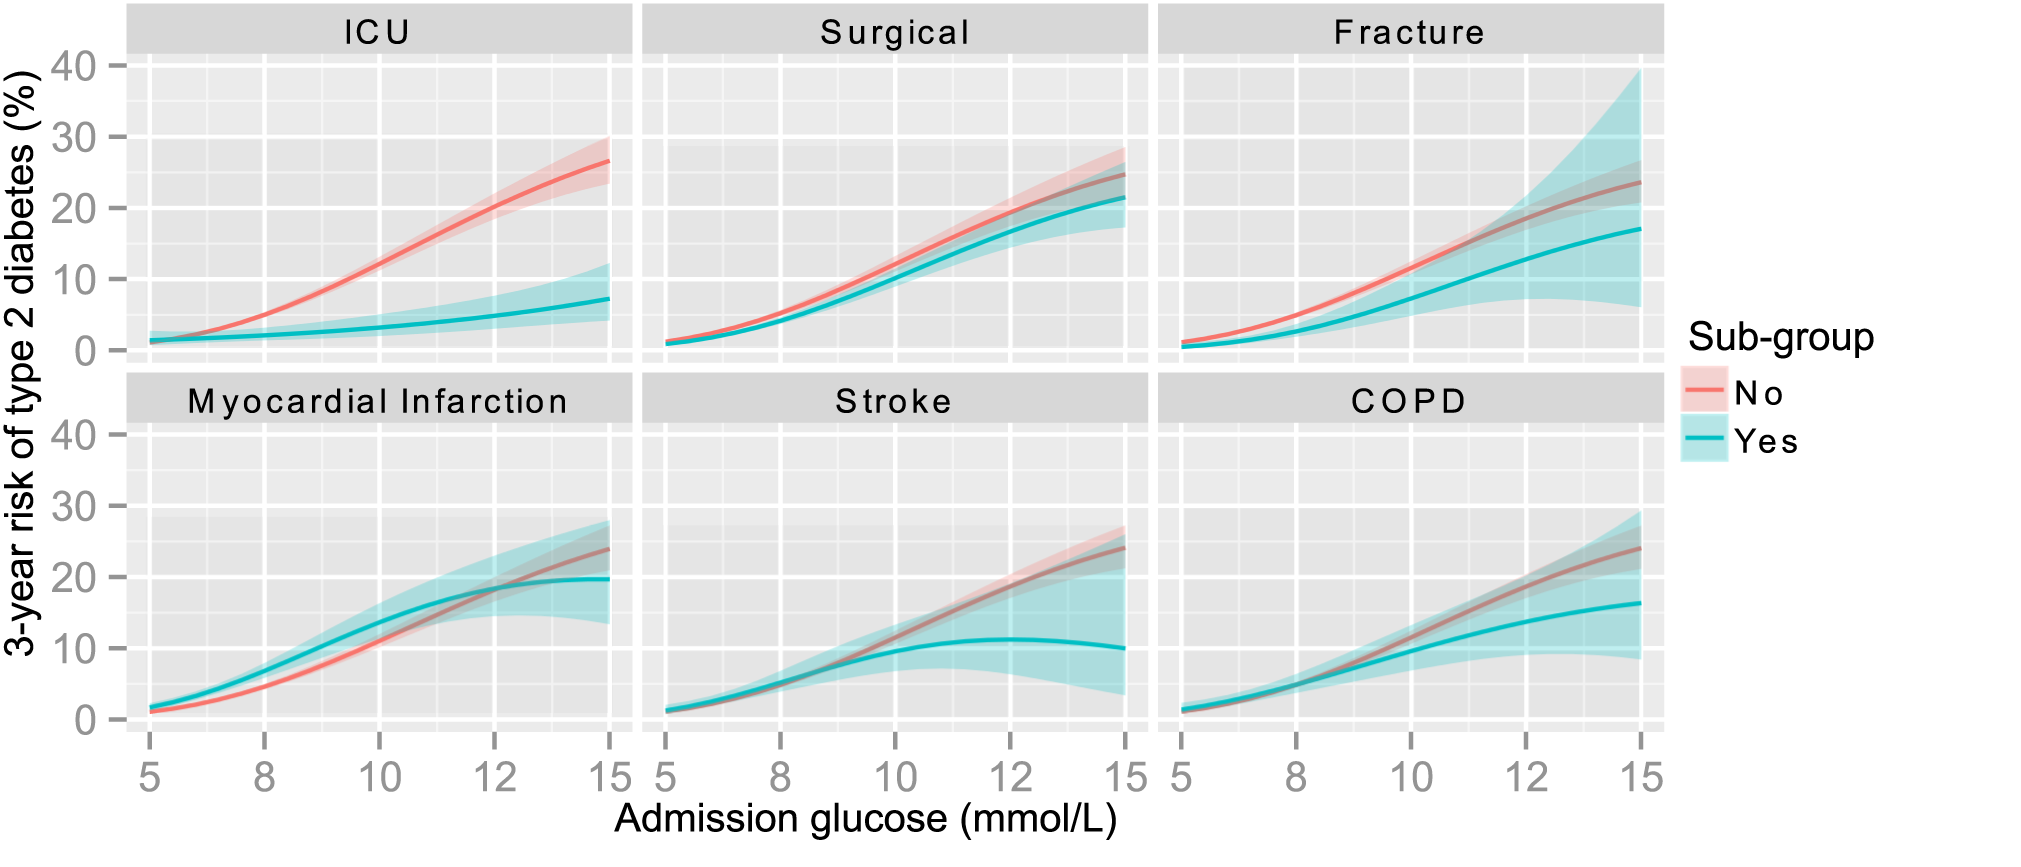 3-year risk of type 2 diabetes by glucose for patients in sub-groups.